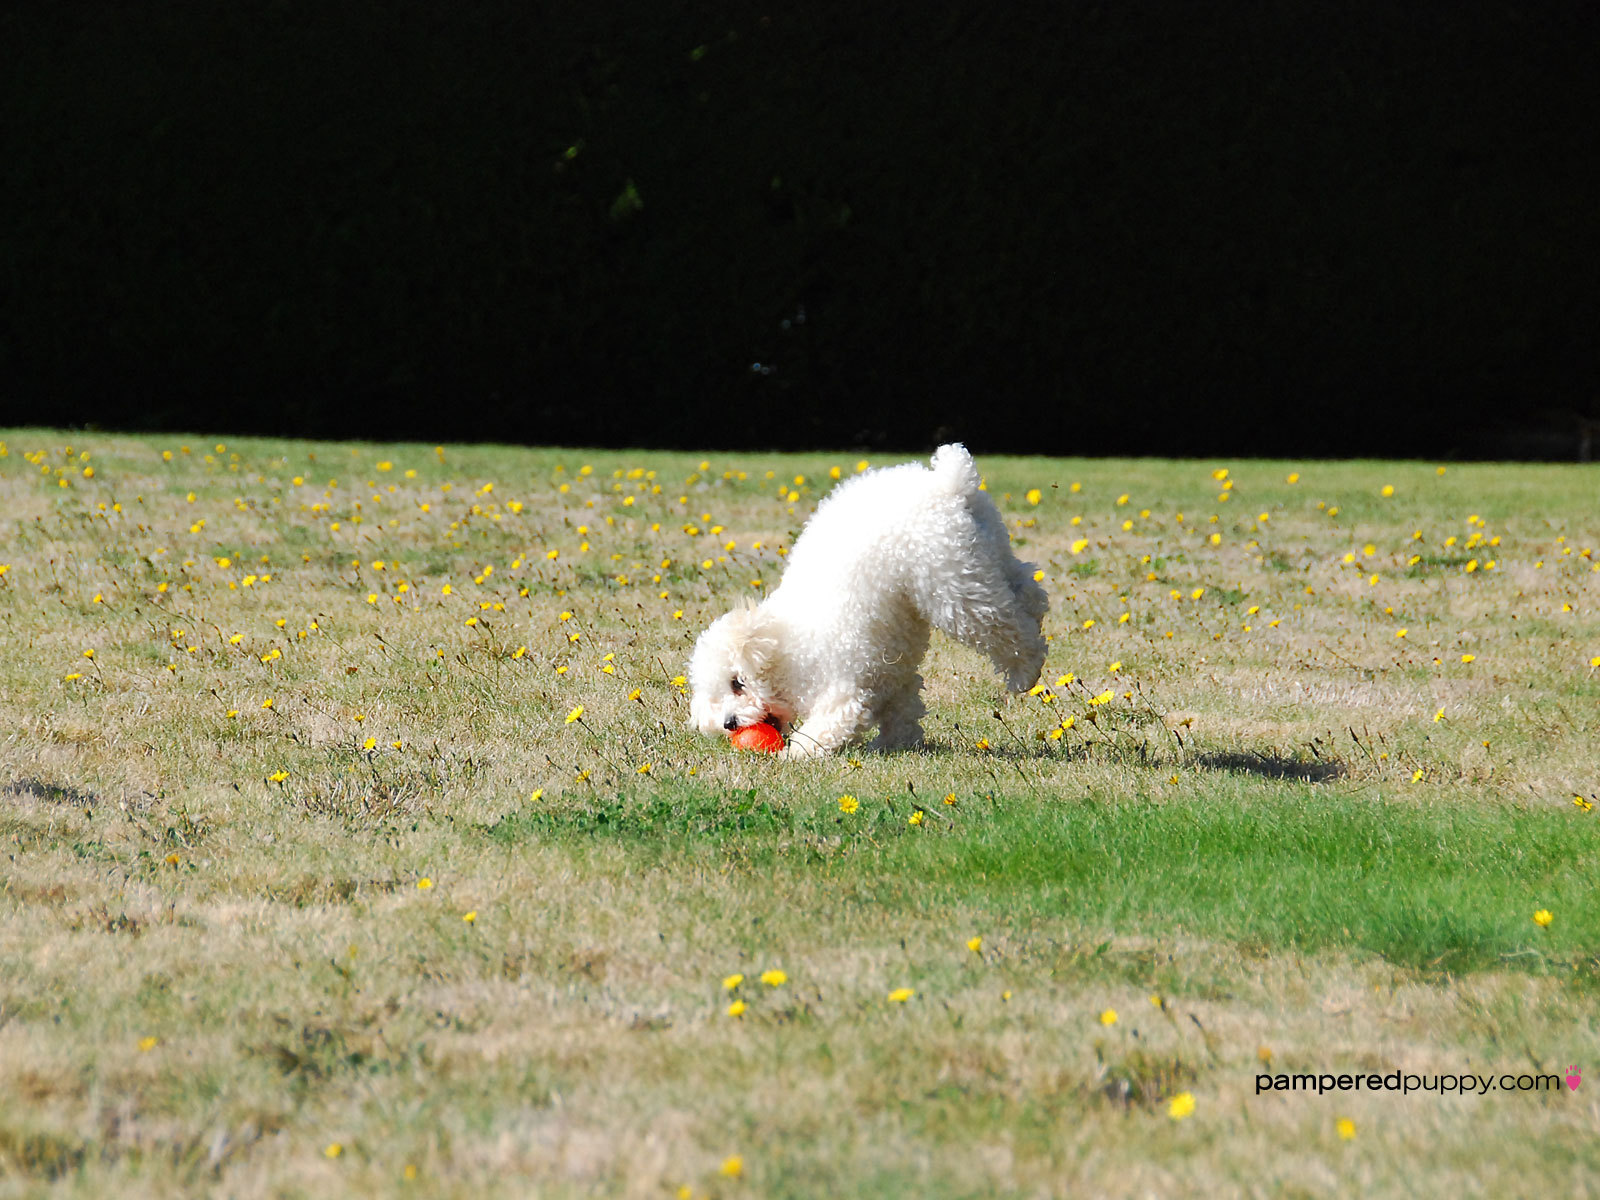 Toy poodle playing fetch.